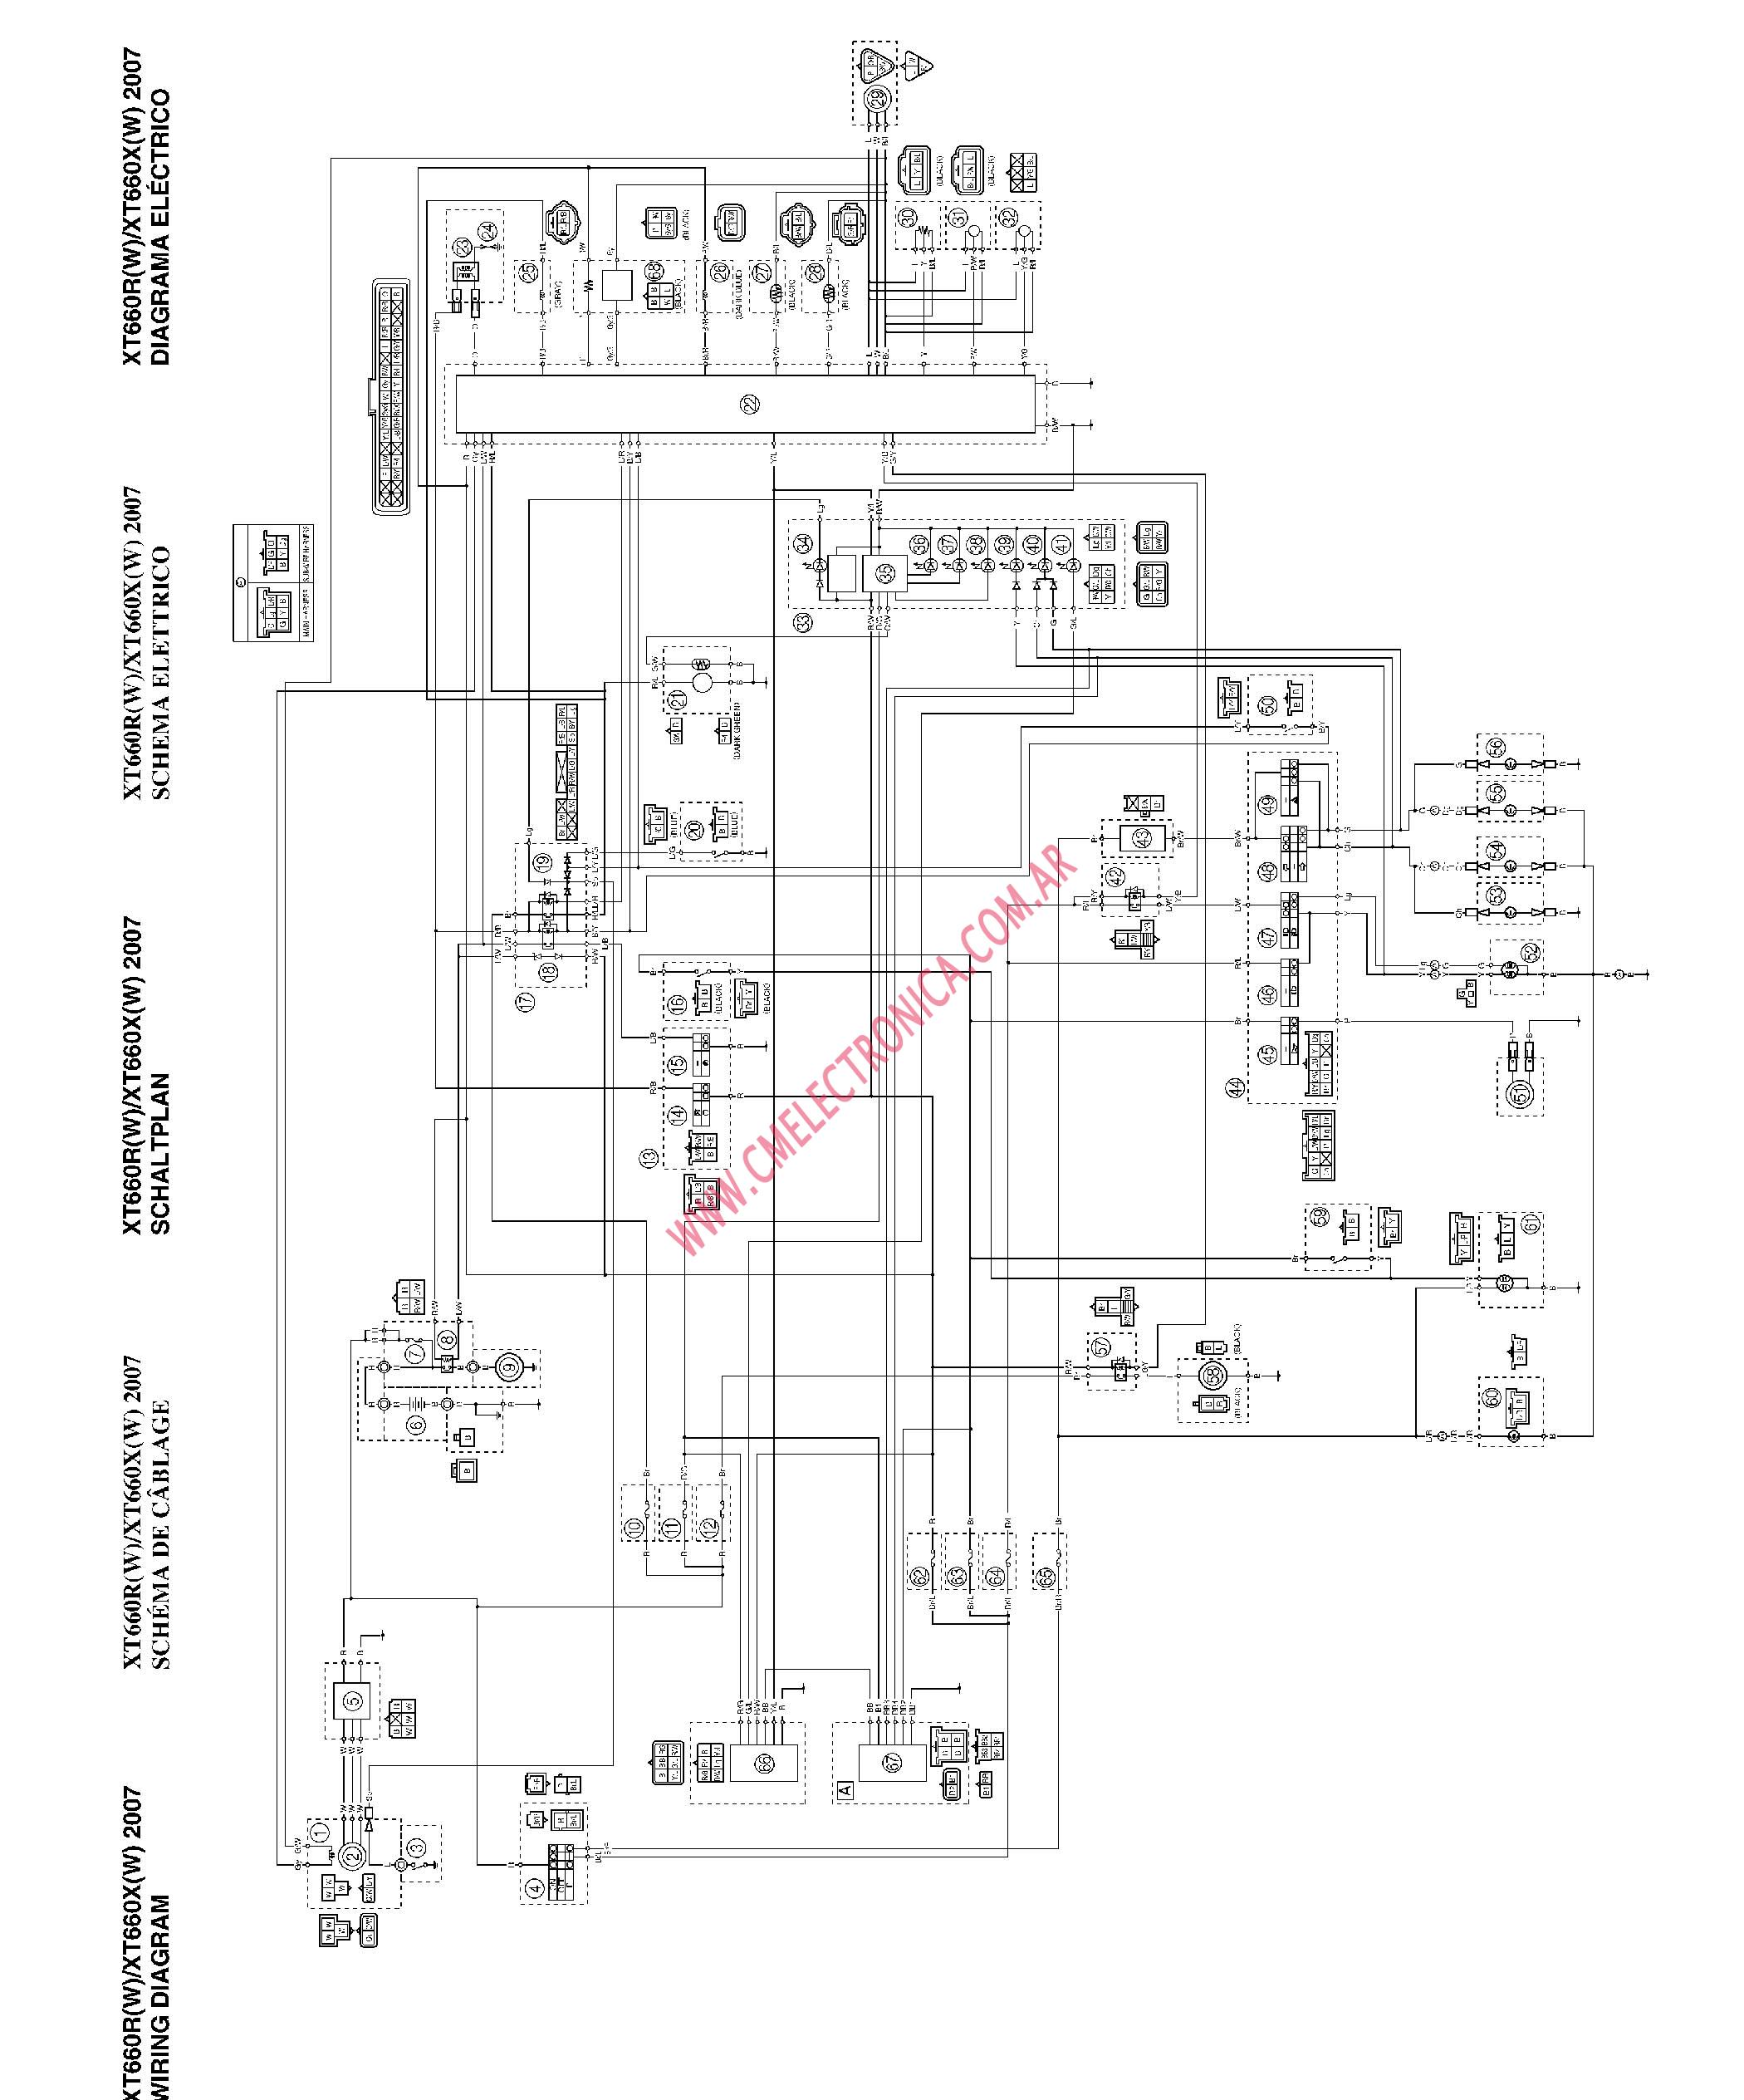 [DIAGRAM] 2001 Raptor 660 Wiring Diagram FULL Version HD